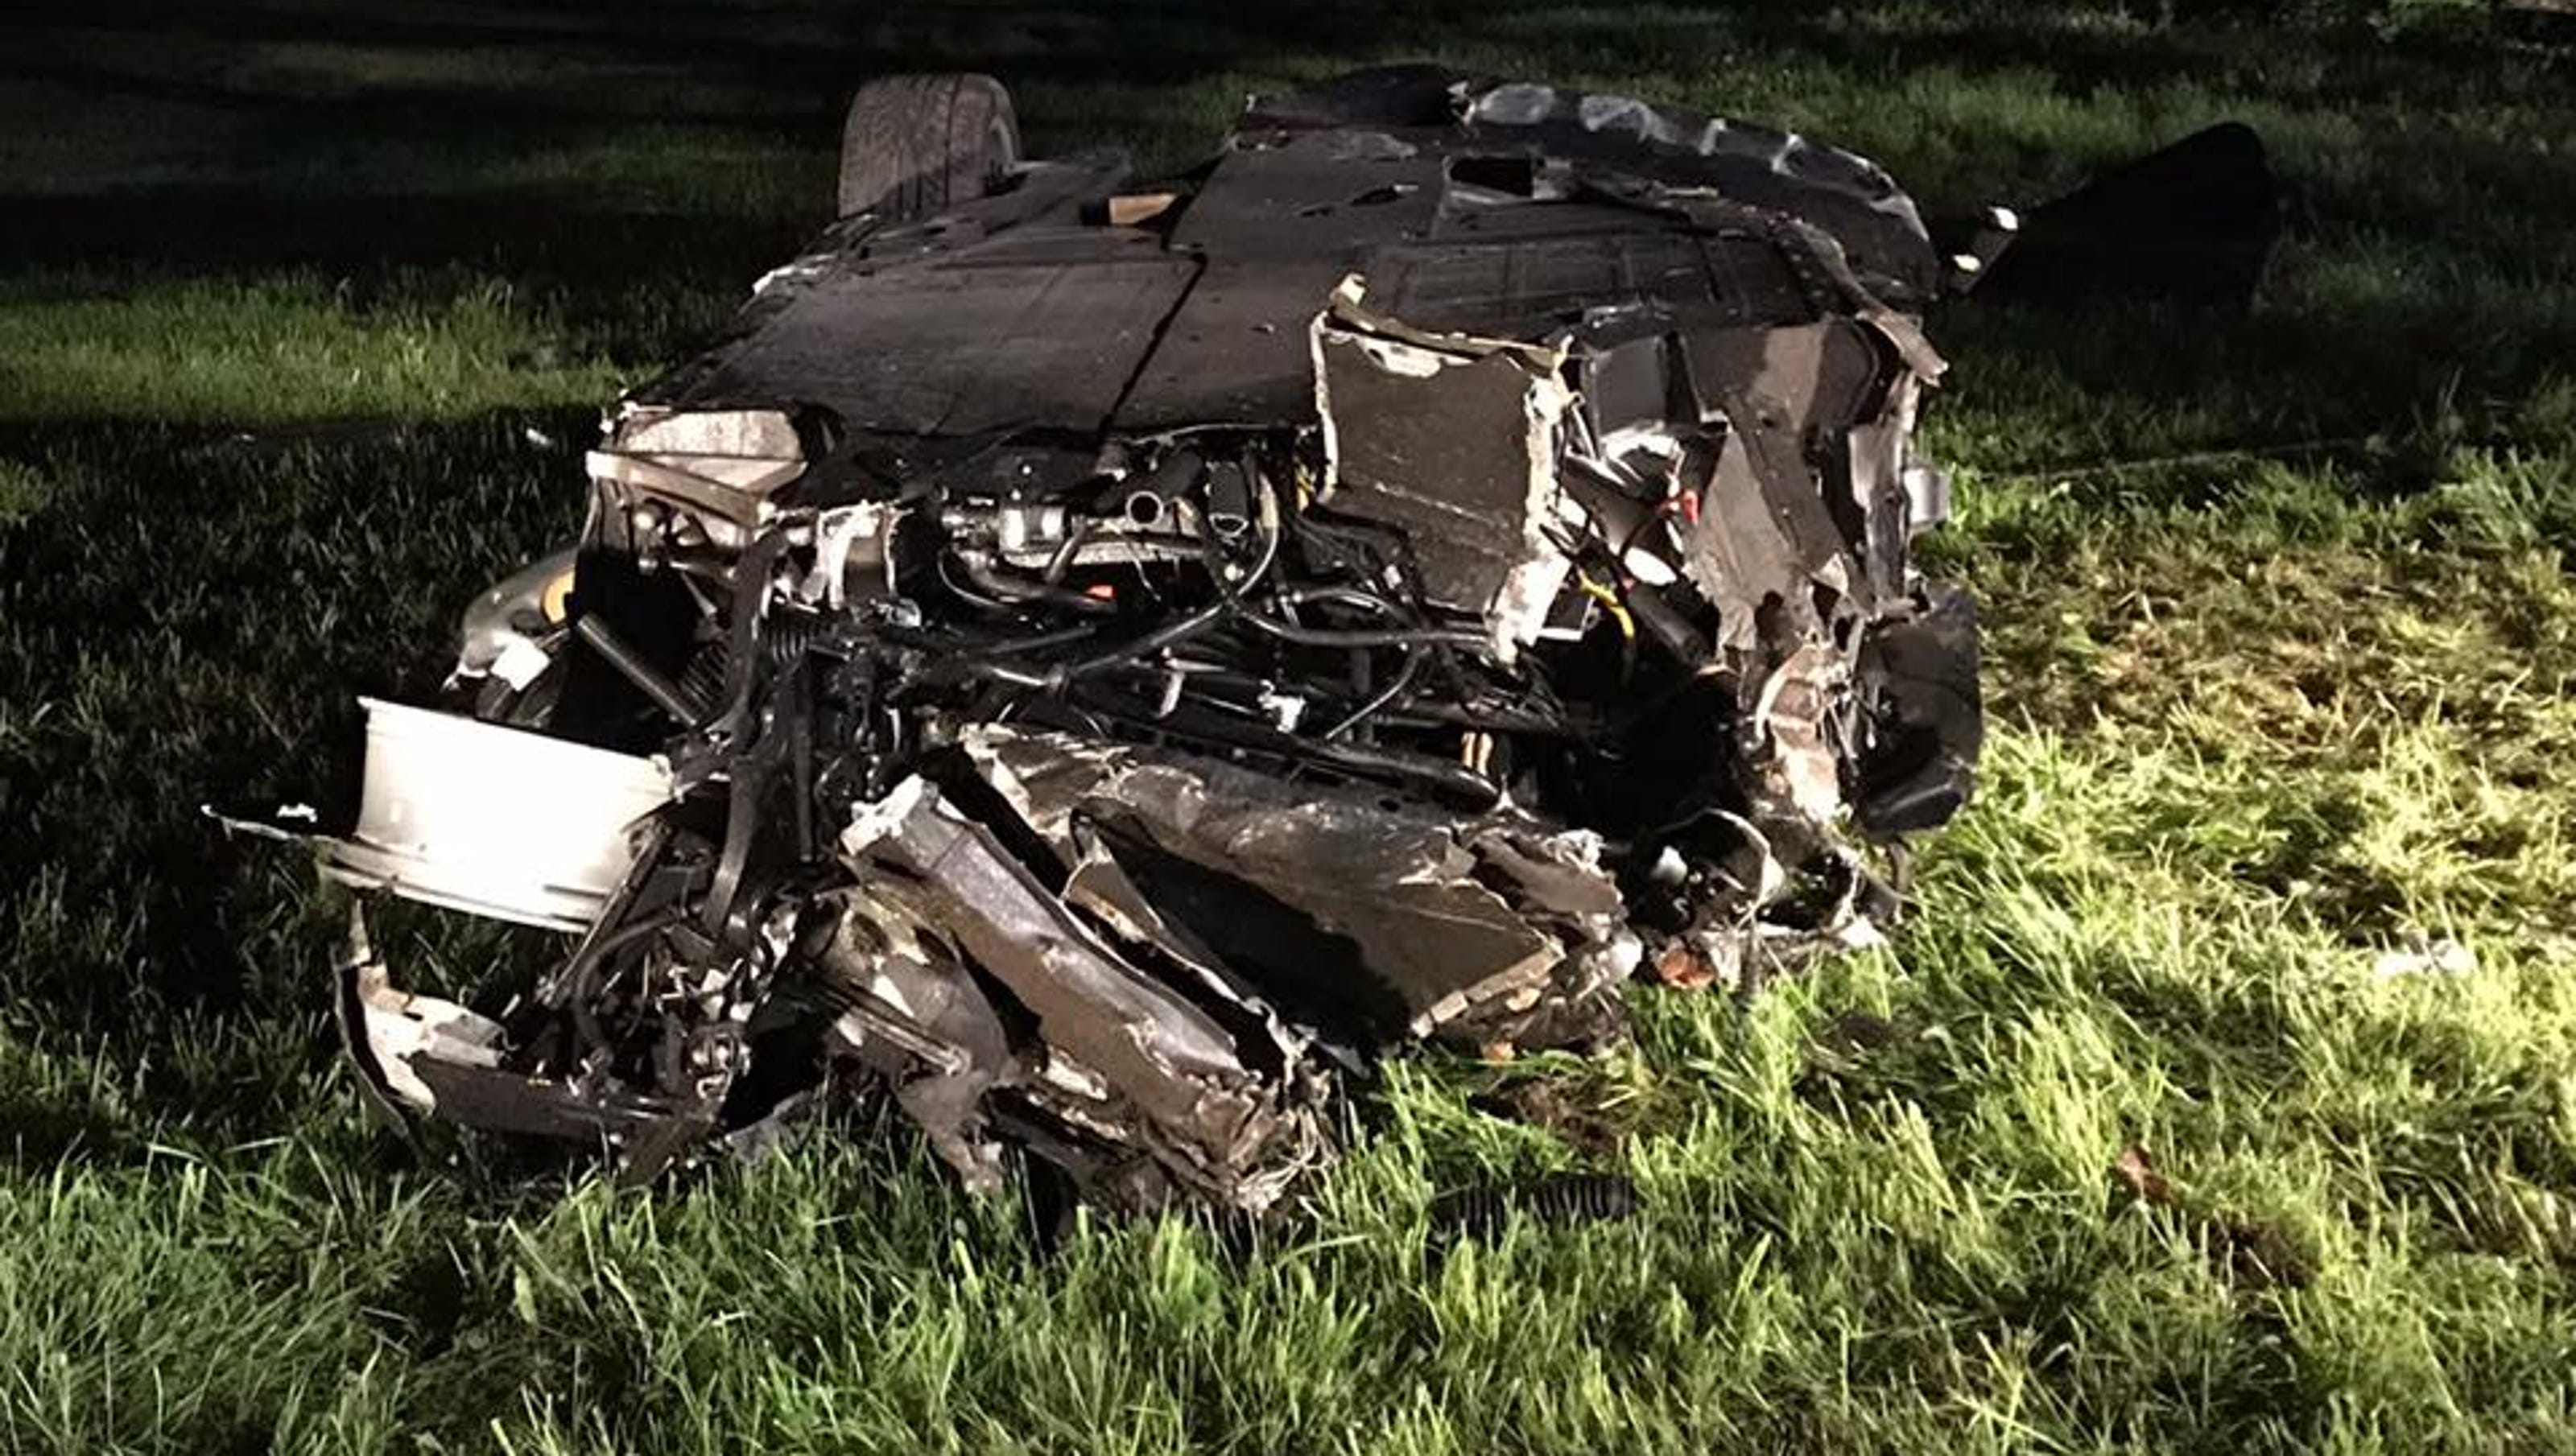 Bedford Teen charged with DWI in Ferrari crash